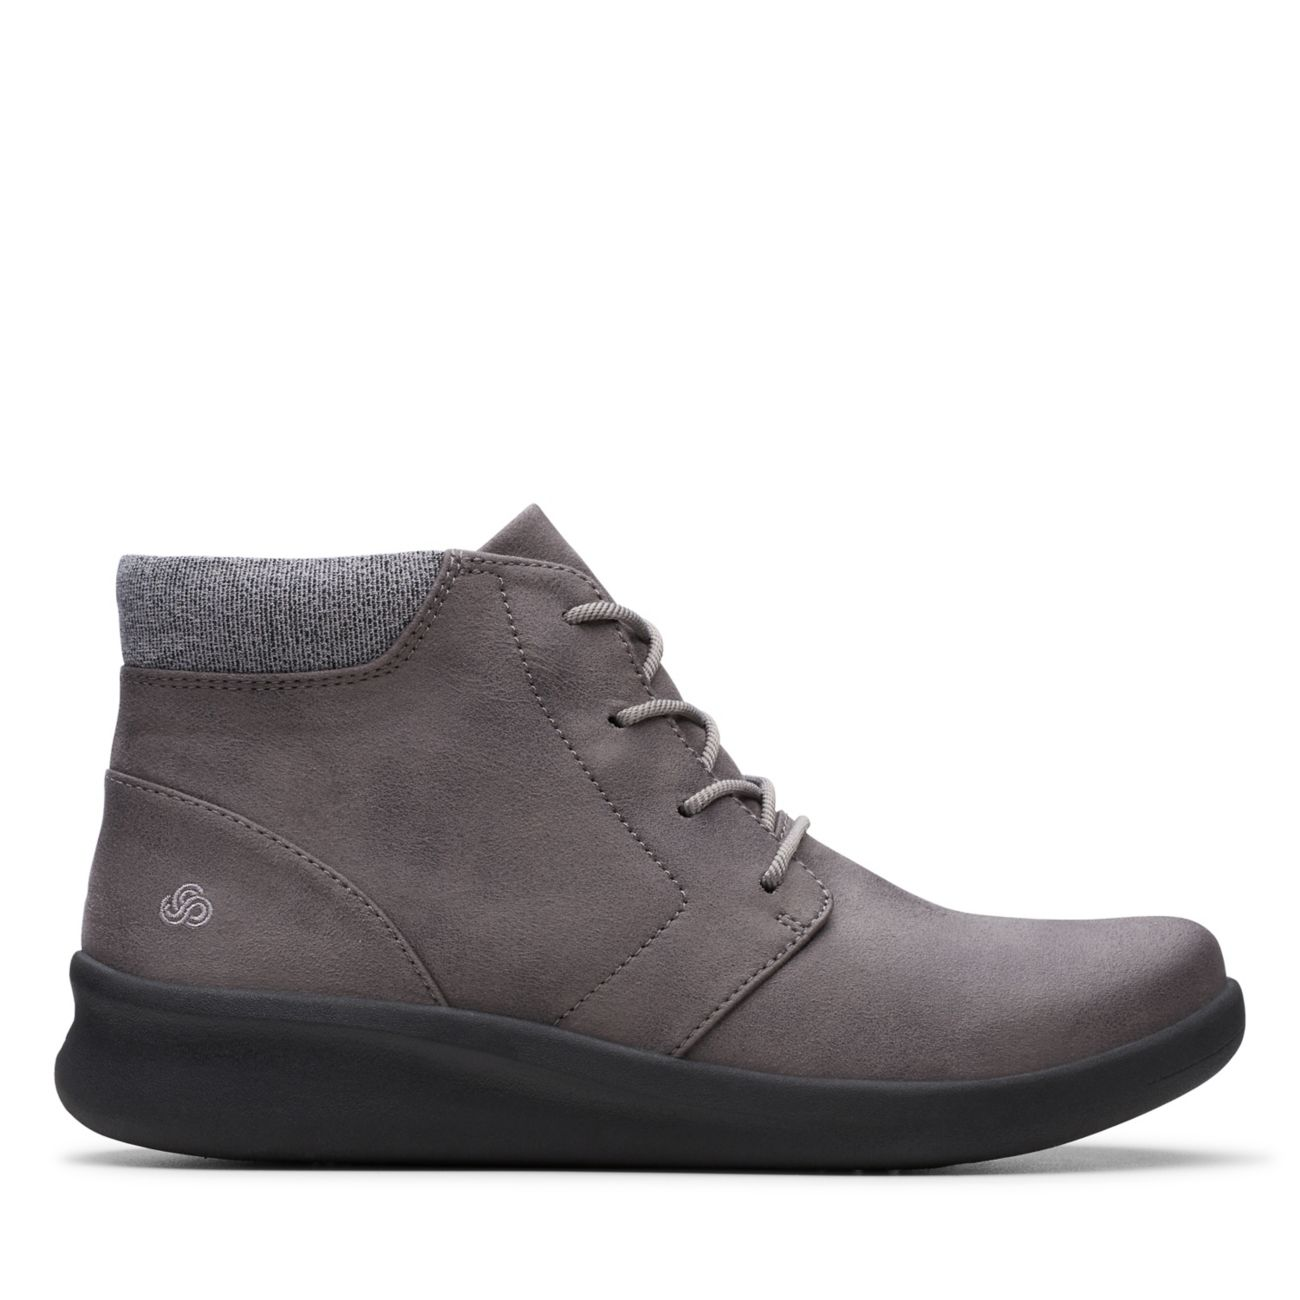 Sillian2.0 Way Grey - Womens Boots-Clarks® Shoes Official Site | Clarks